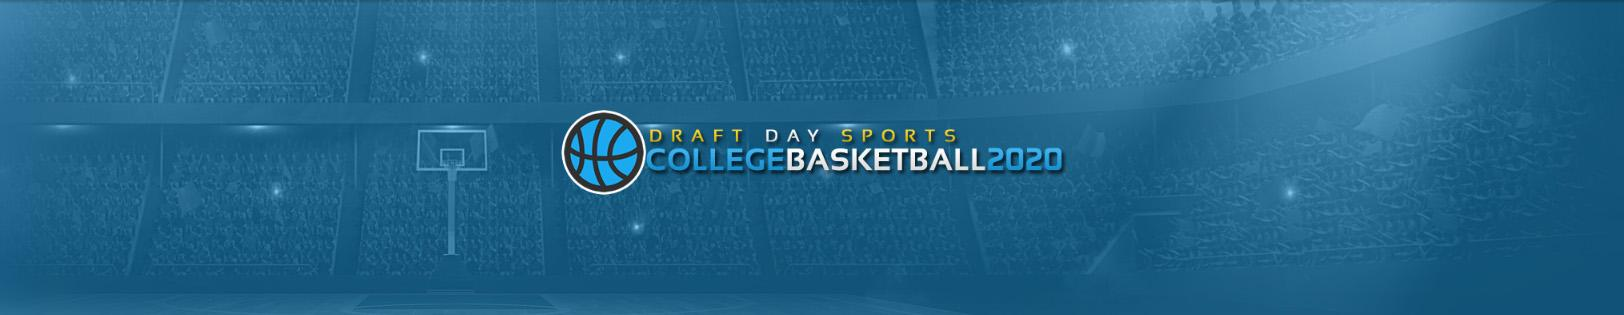 Draft Day Sports: College Basketball 2020